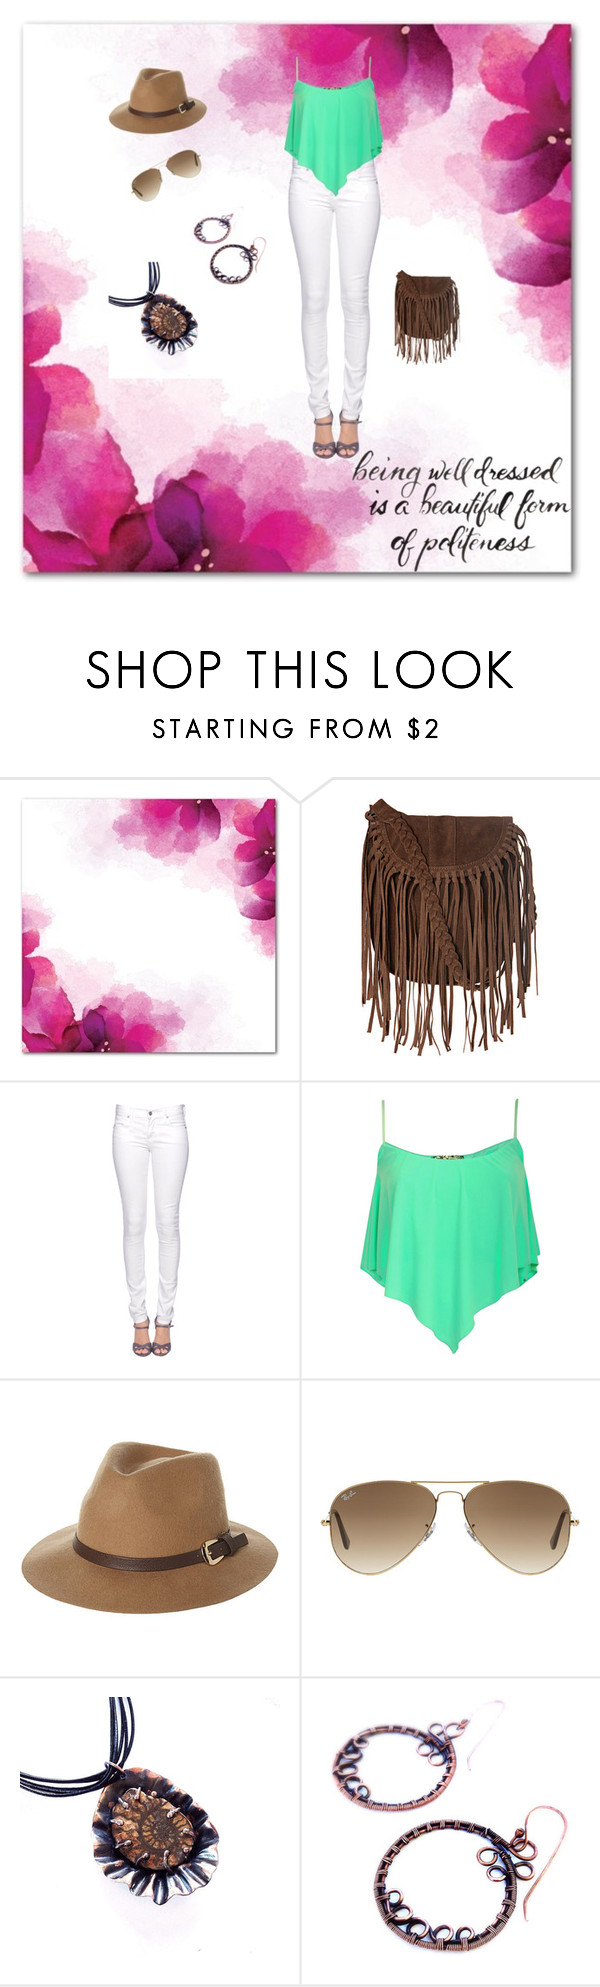 """""""Sassy"""" by desertshines ❤ liked on Polyvore featuring Topshop, Citizens of Humanity, Rusty, Ray-Ban and goteamflourish"""